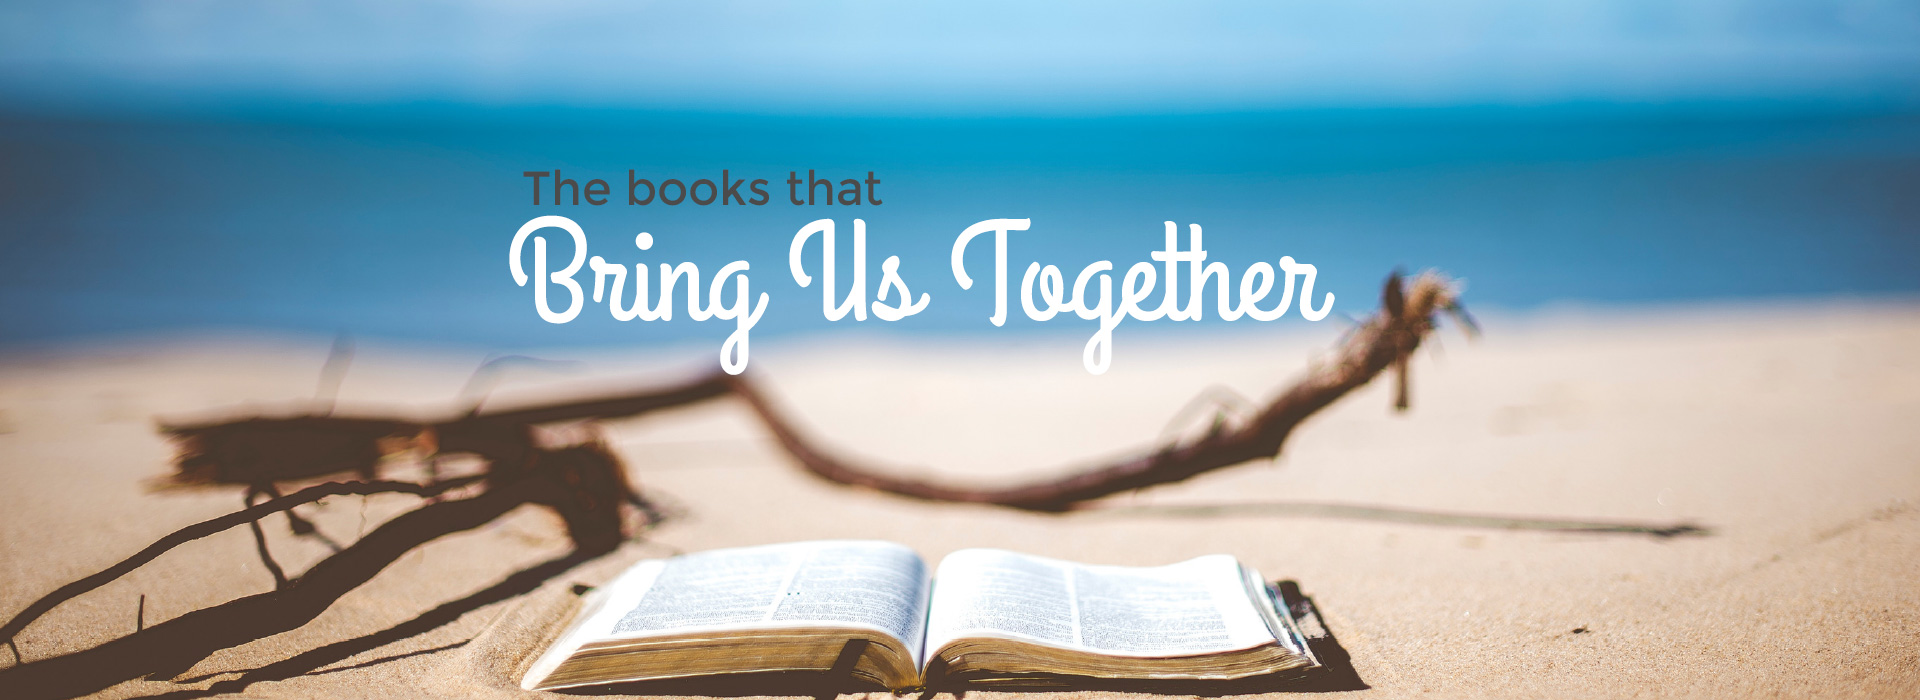 The Books that Bring Us Together